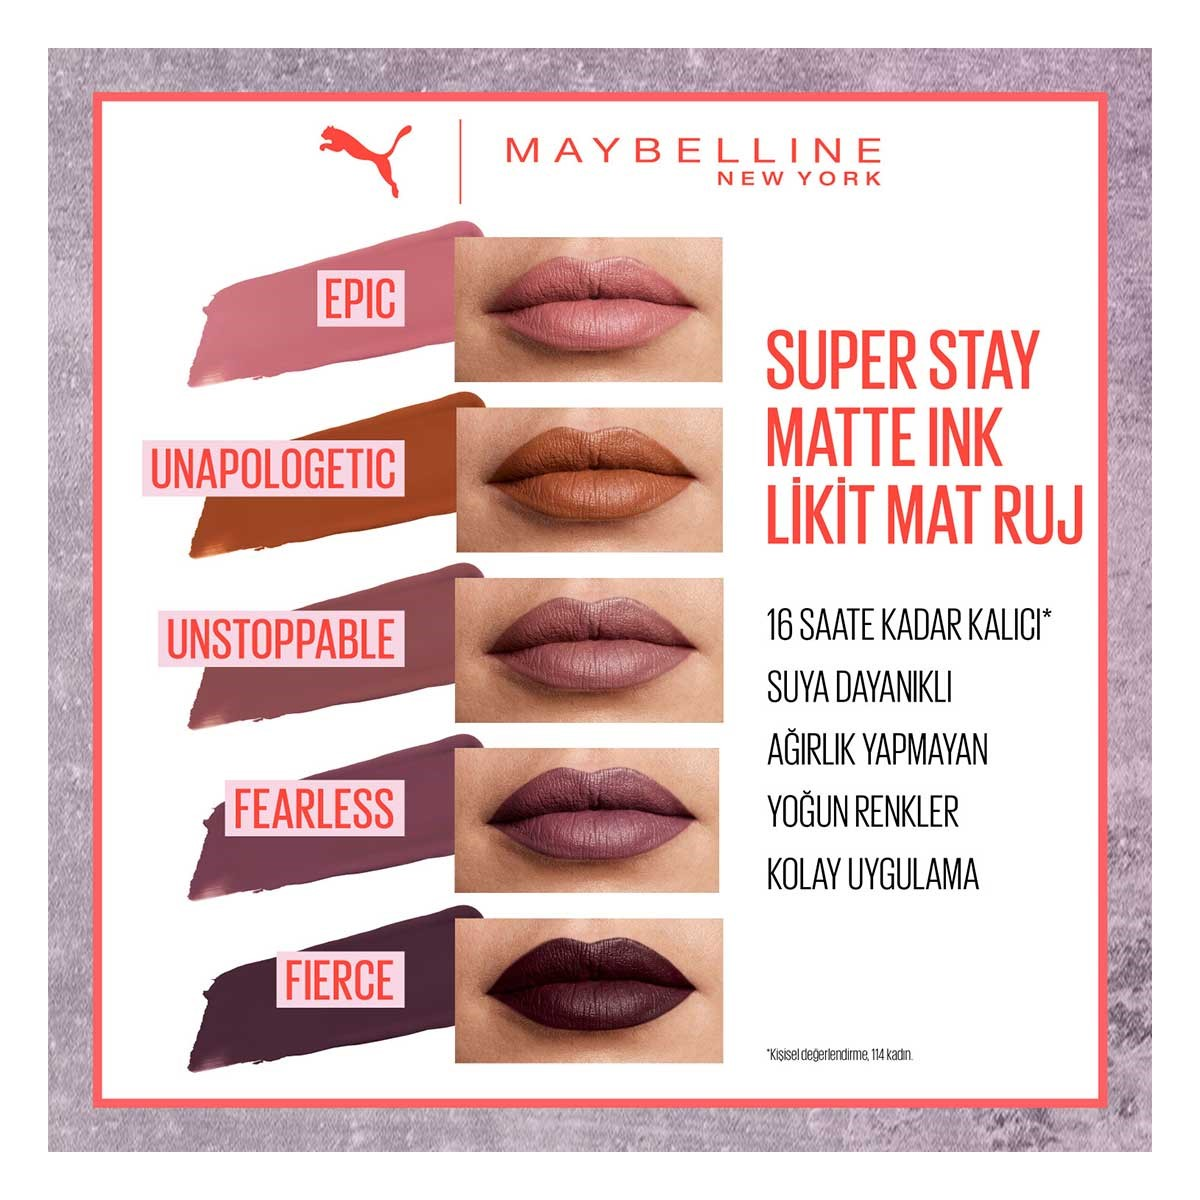 8d86242bfb9 ... Maybelline New York - PUMA X Maybelline Super Stay Matte Ink Likit Mat  Ruj - 09 ...